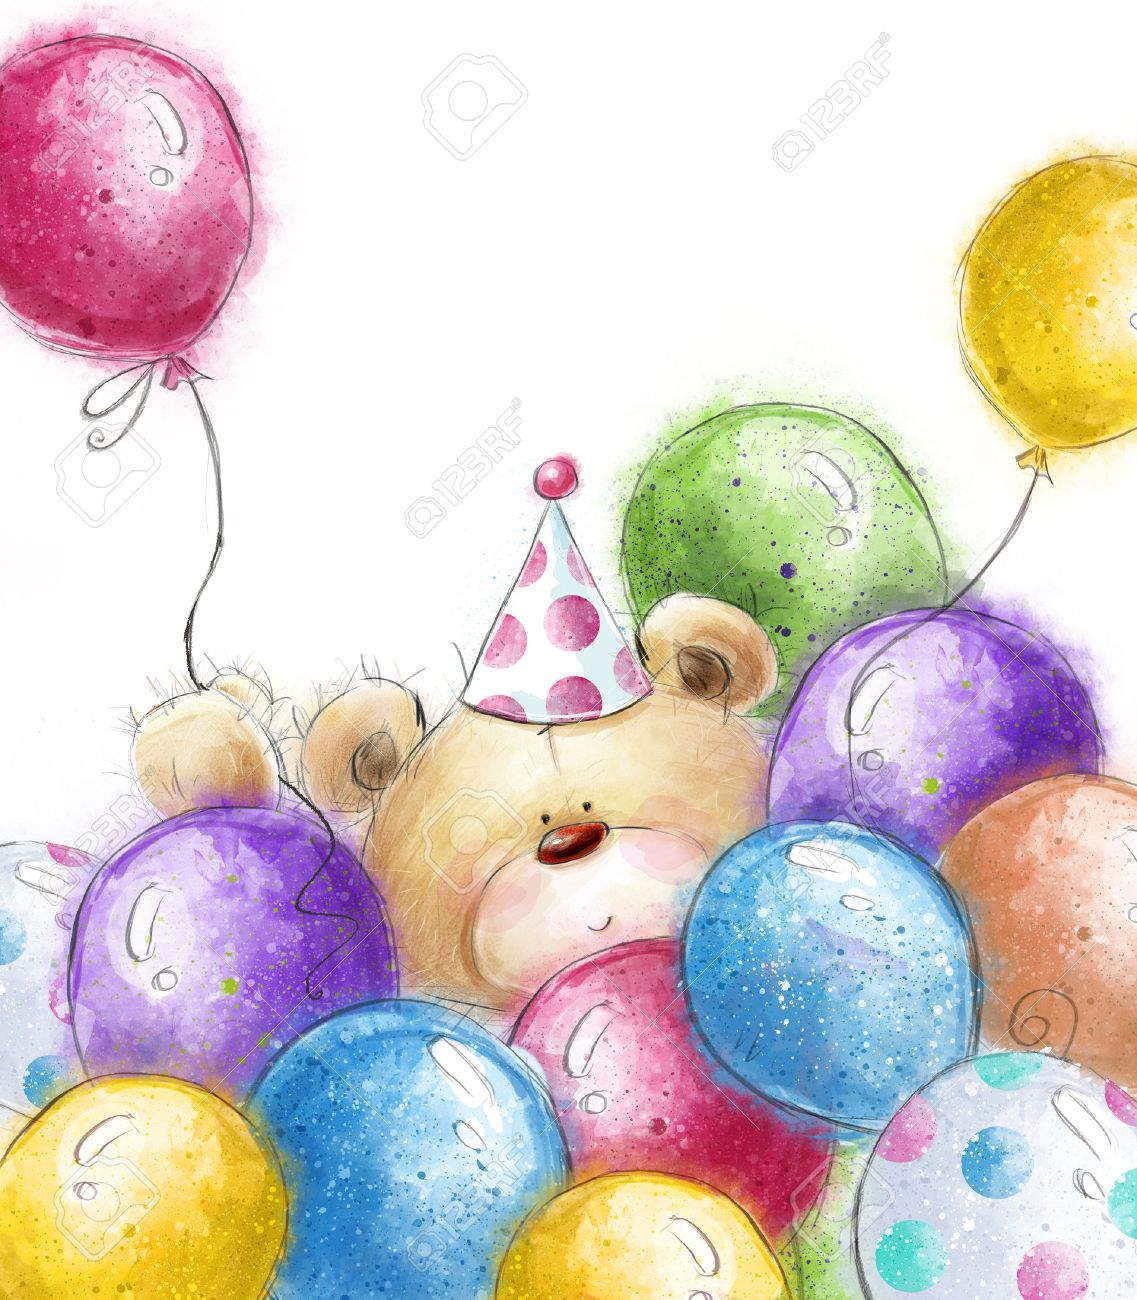 Cute Teddy Bear With The Colorful BalloonsBackground And BalloonsBirthday Greeting